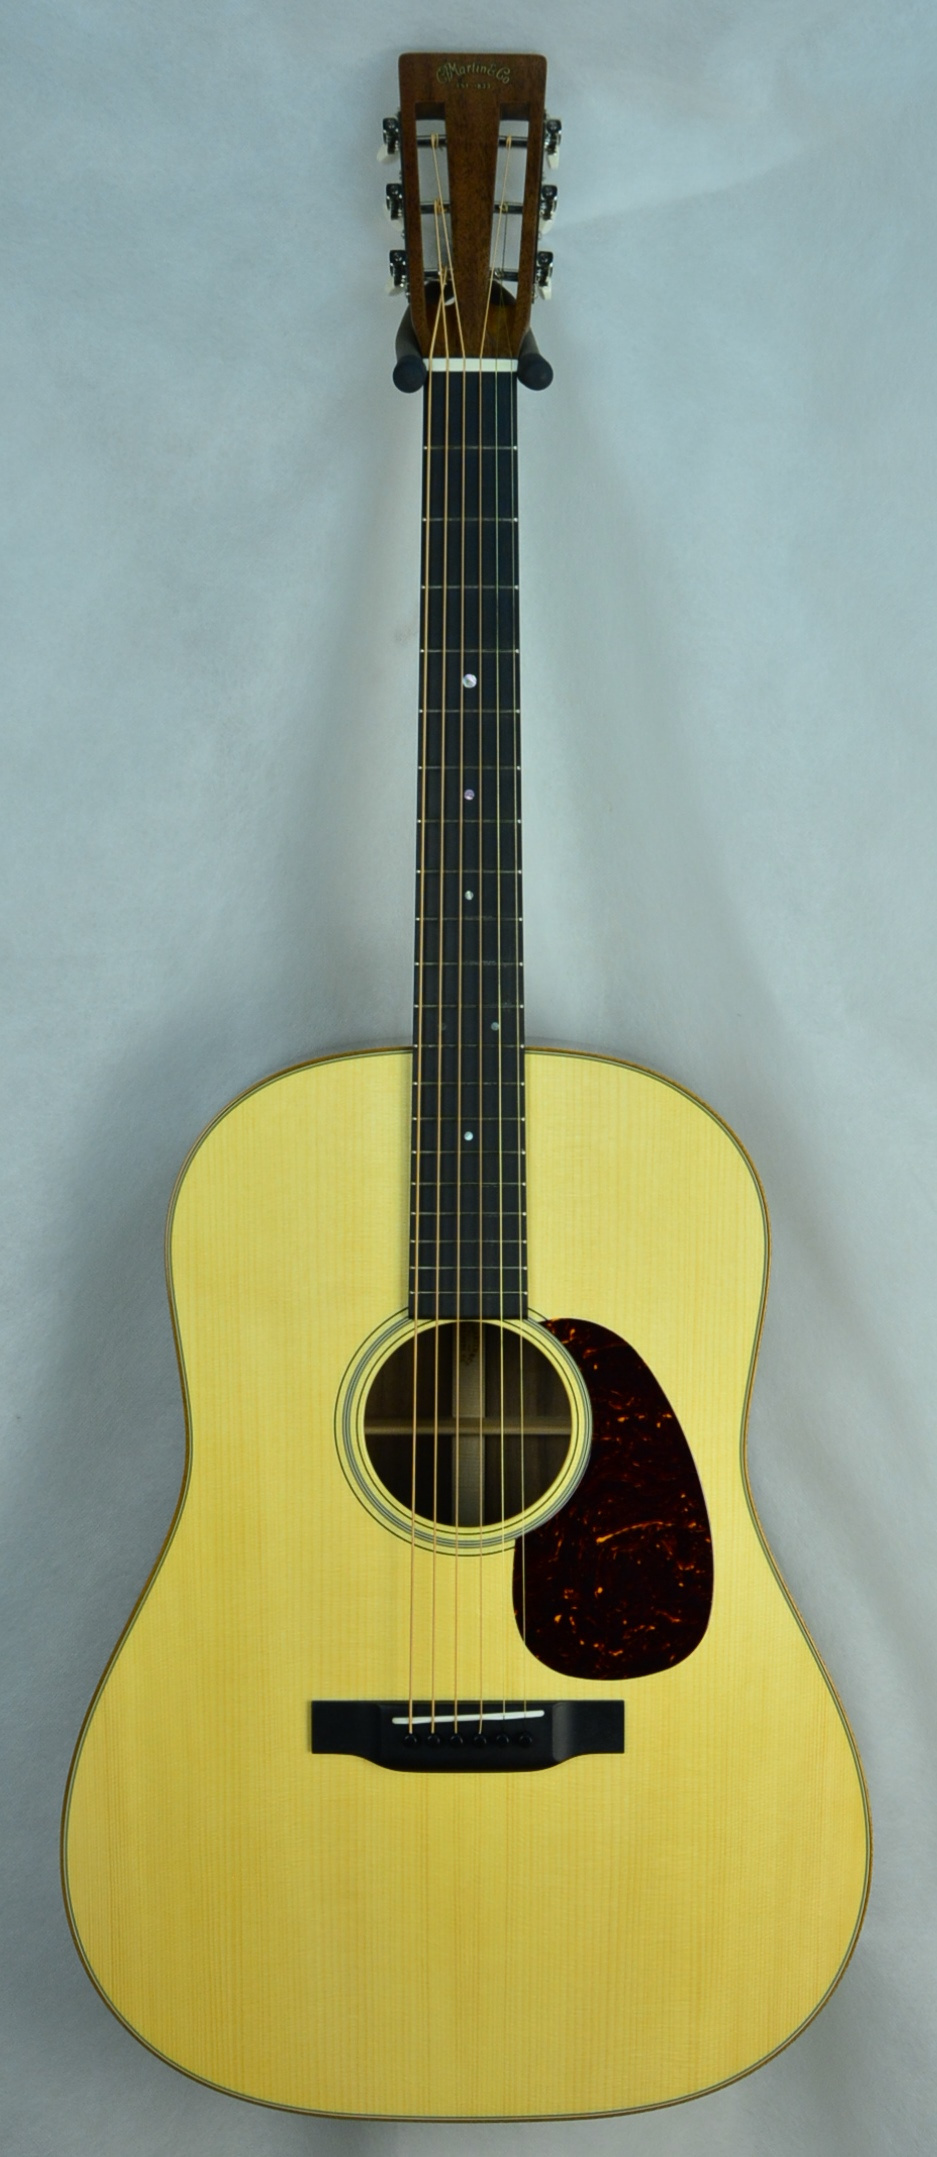 Q-2650124 S-1938283 D-12 Fret Black Walnut Adi (1).JPG